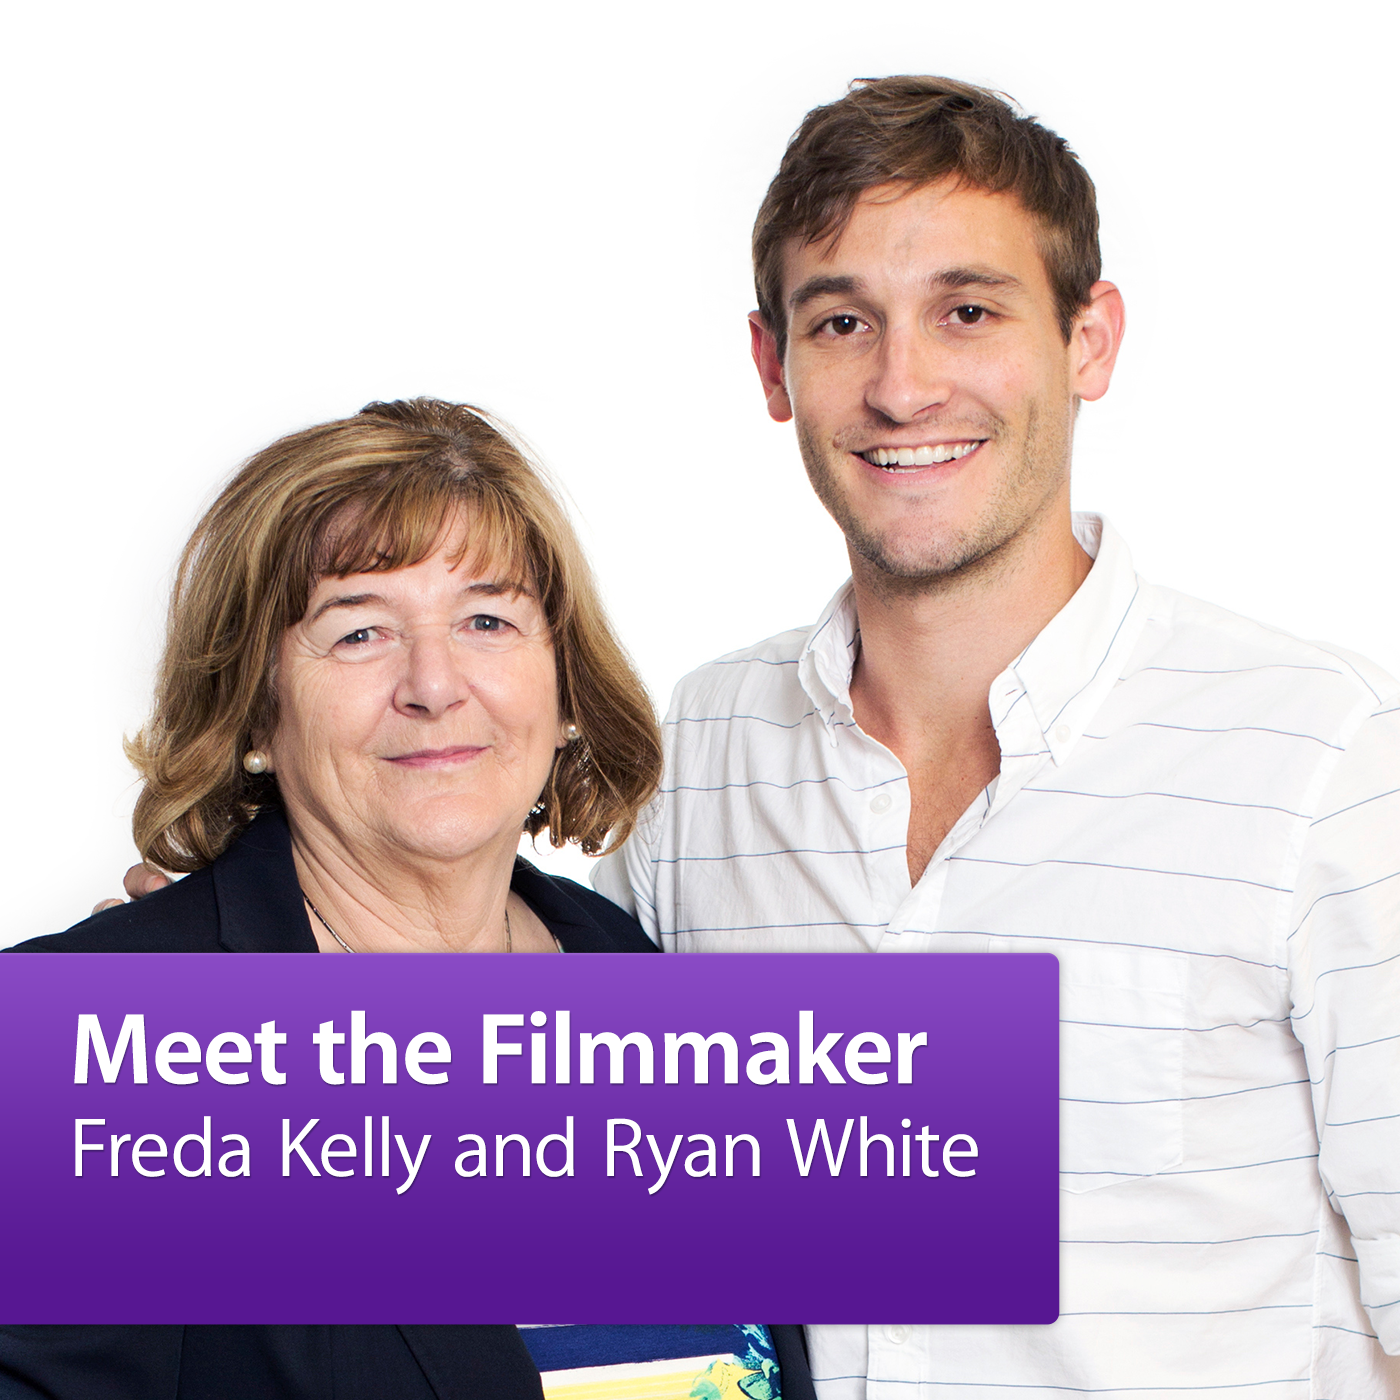 Freda Kelly and Ryan White: Meet the Filmmaker